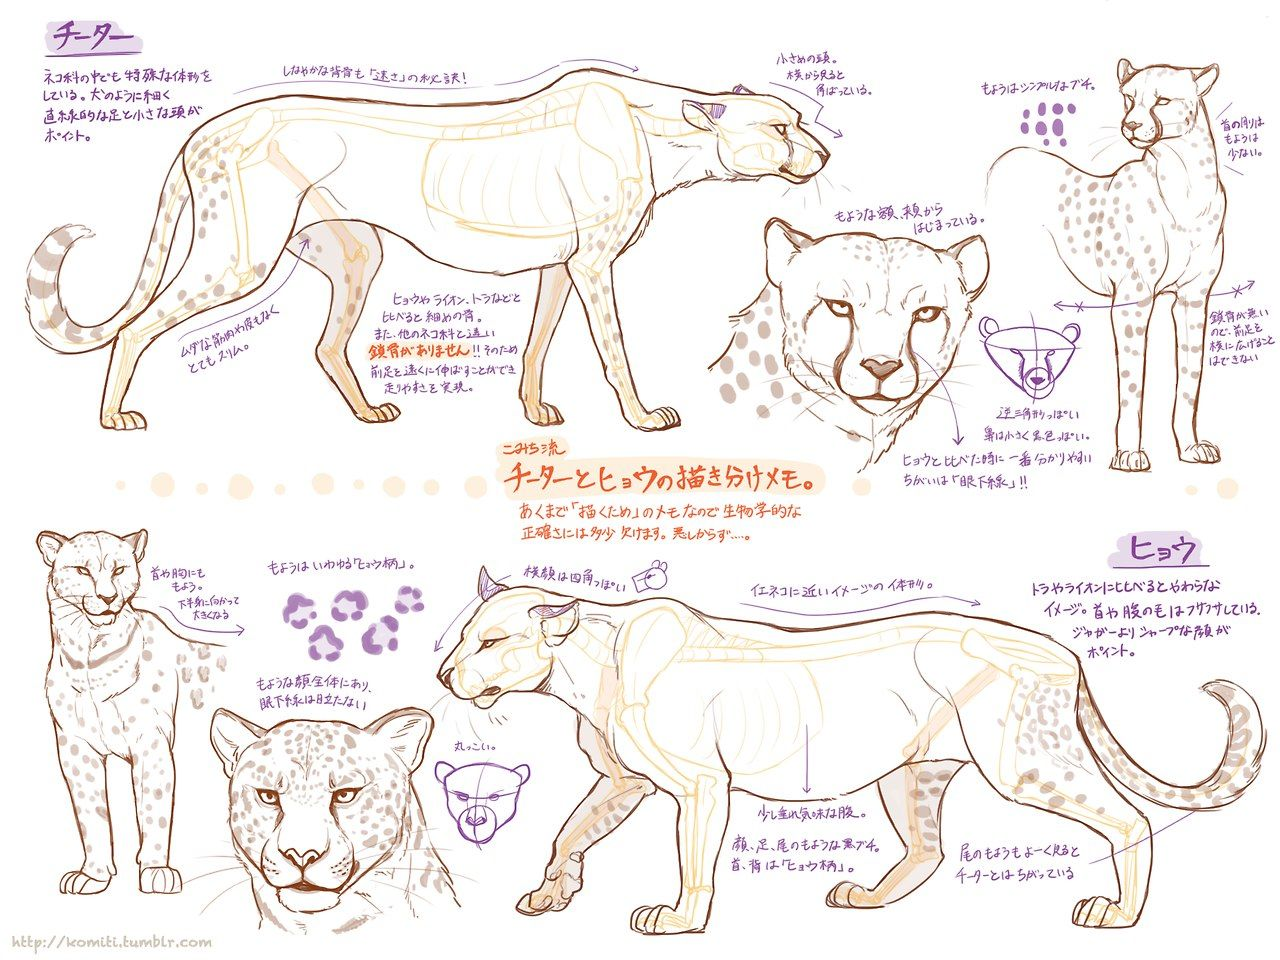 Pin by Ivett on Draw | Pinterest | Pumas, Drawings and Anatomy